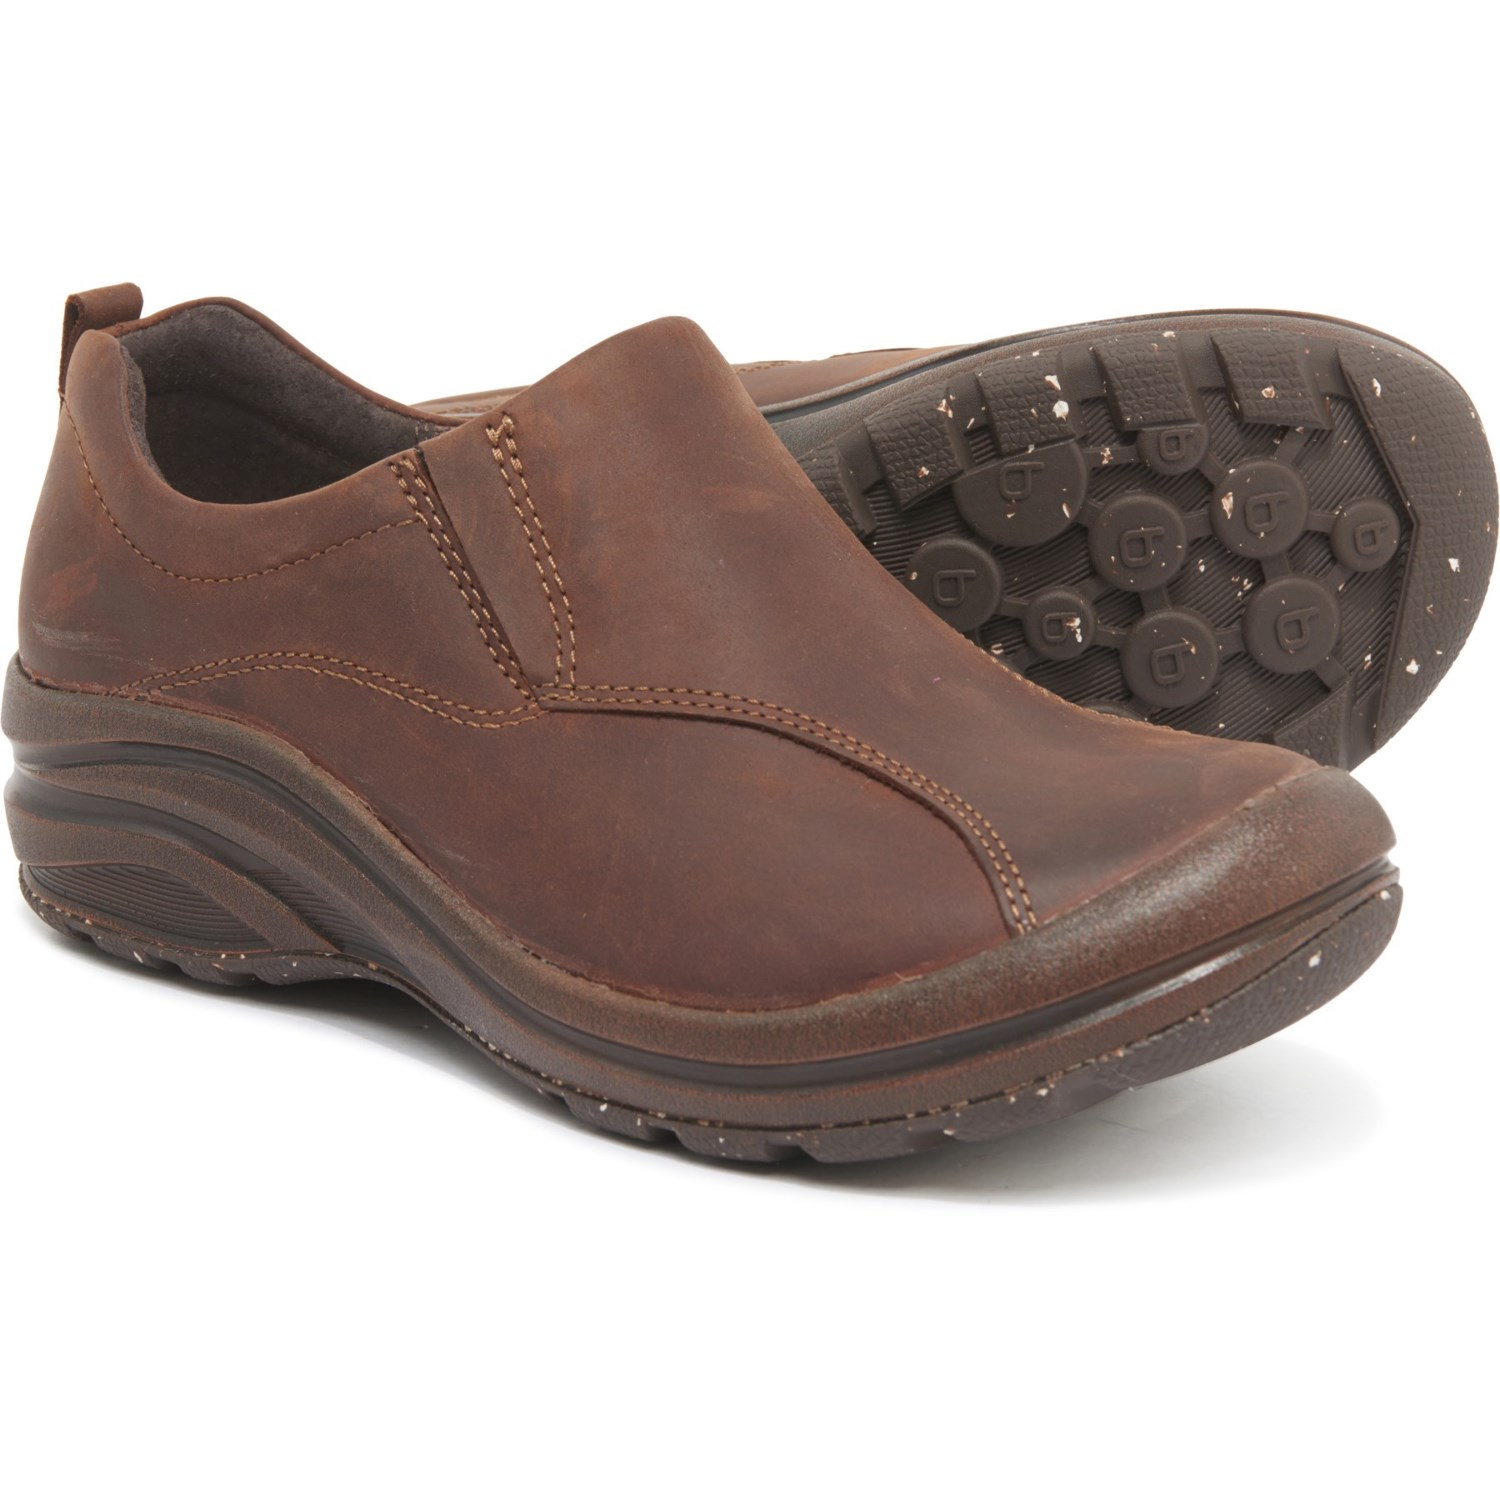 Bionica Brown Maplewood Leather Shoes